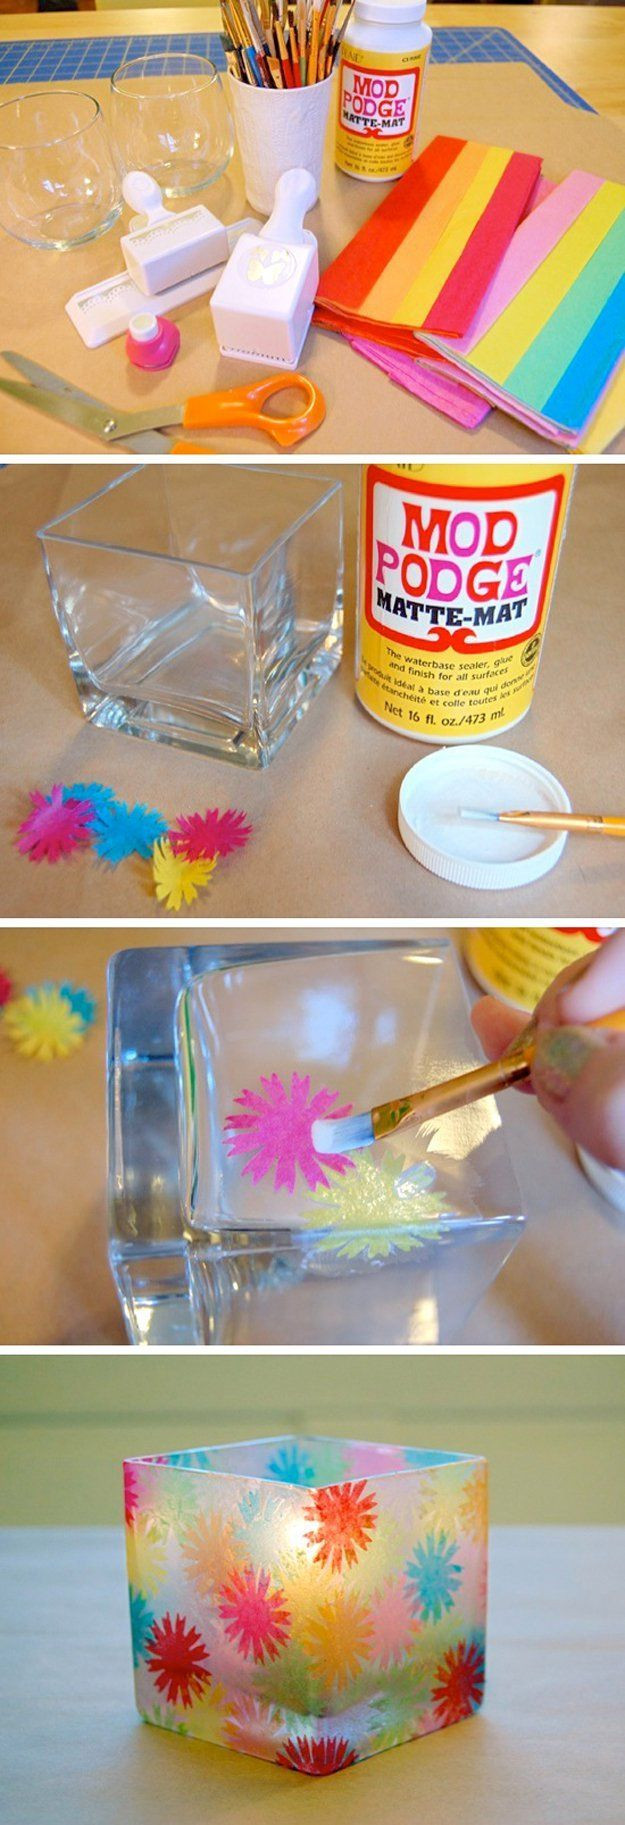 Best ideas about DIY Craft Projects For Adults . Save or Pin 25 best ideas about Easy Diy Crafts on Pinterest Now.